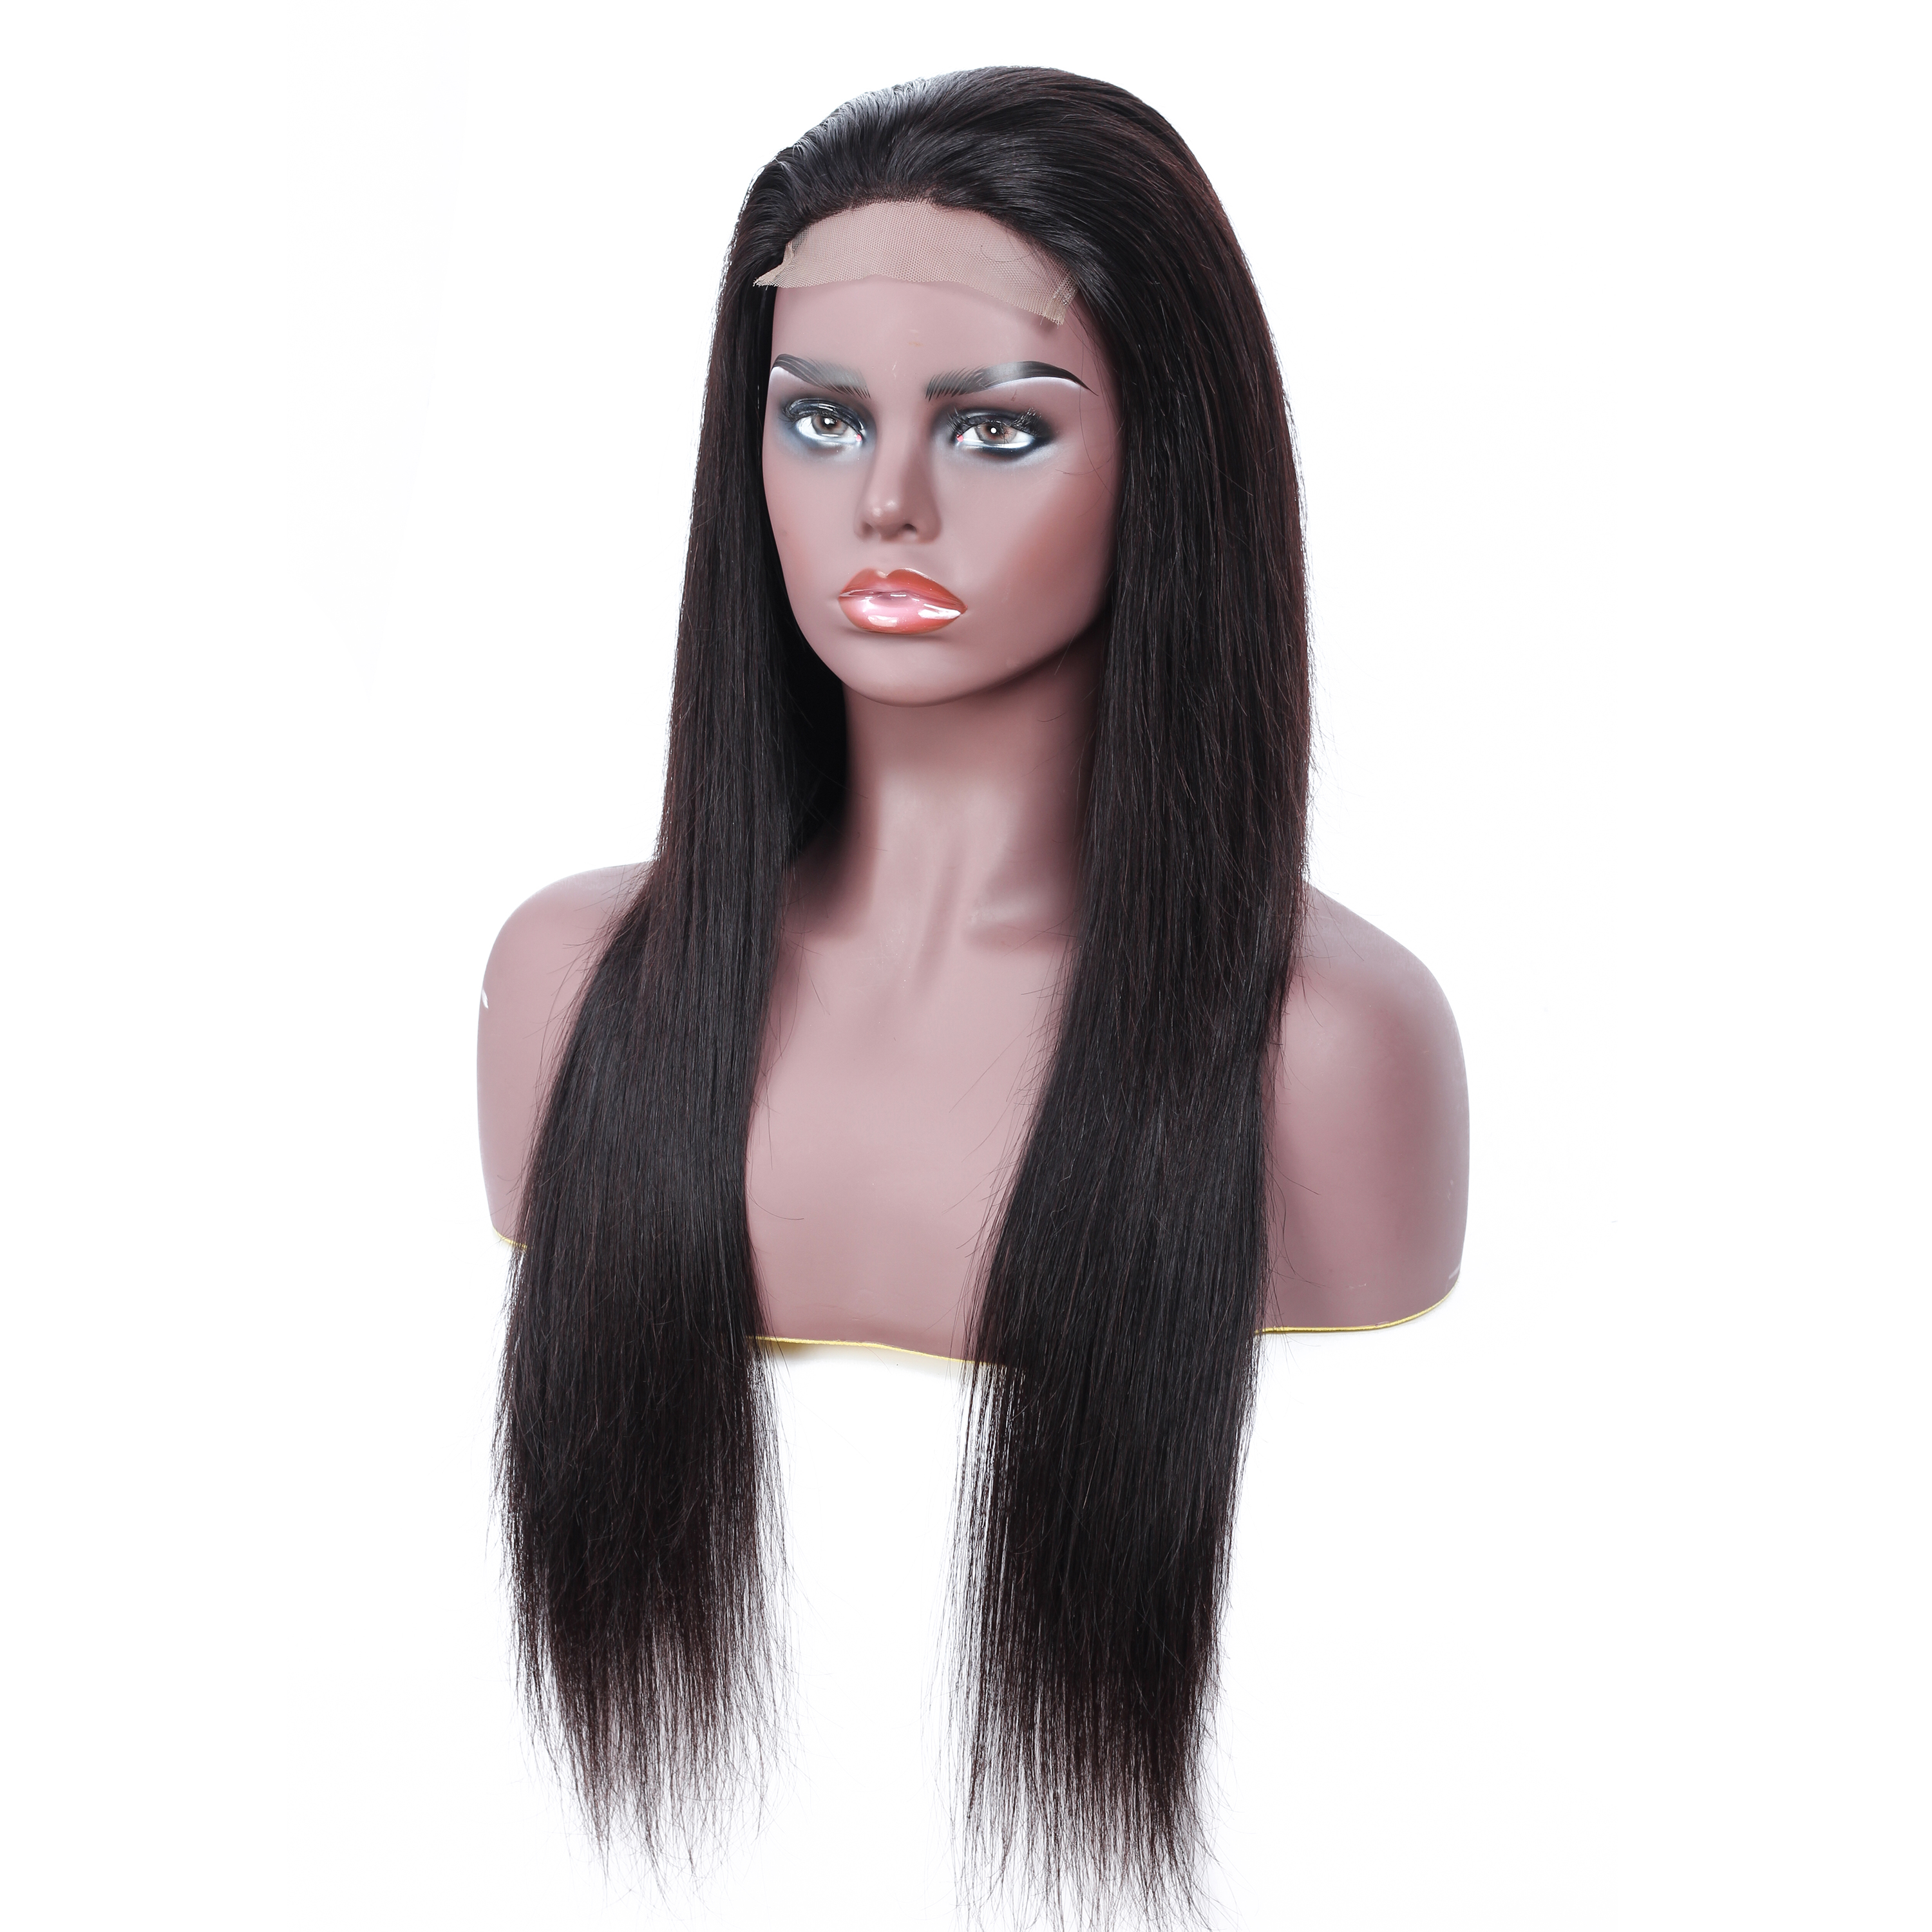 PHEBI 4 4 Lace Closure Human Hair Wigs Brazilian Hair Straight Wigs Non Remy Lace Wig